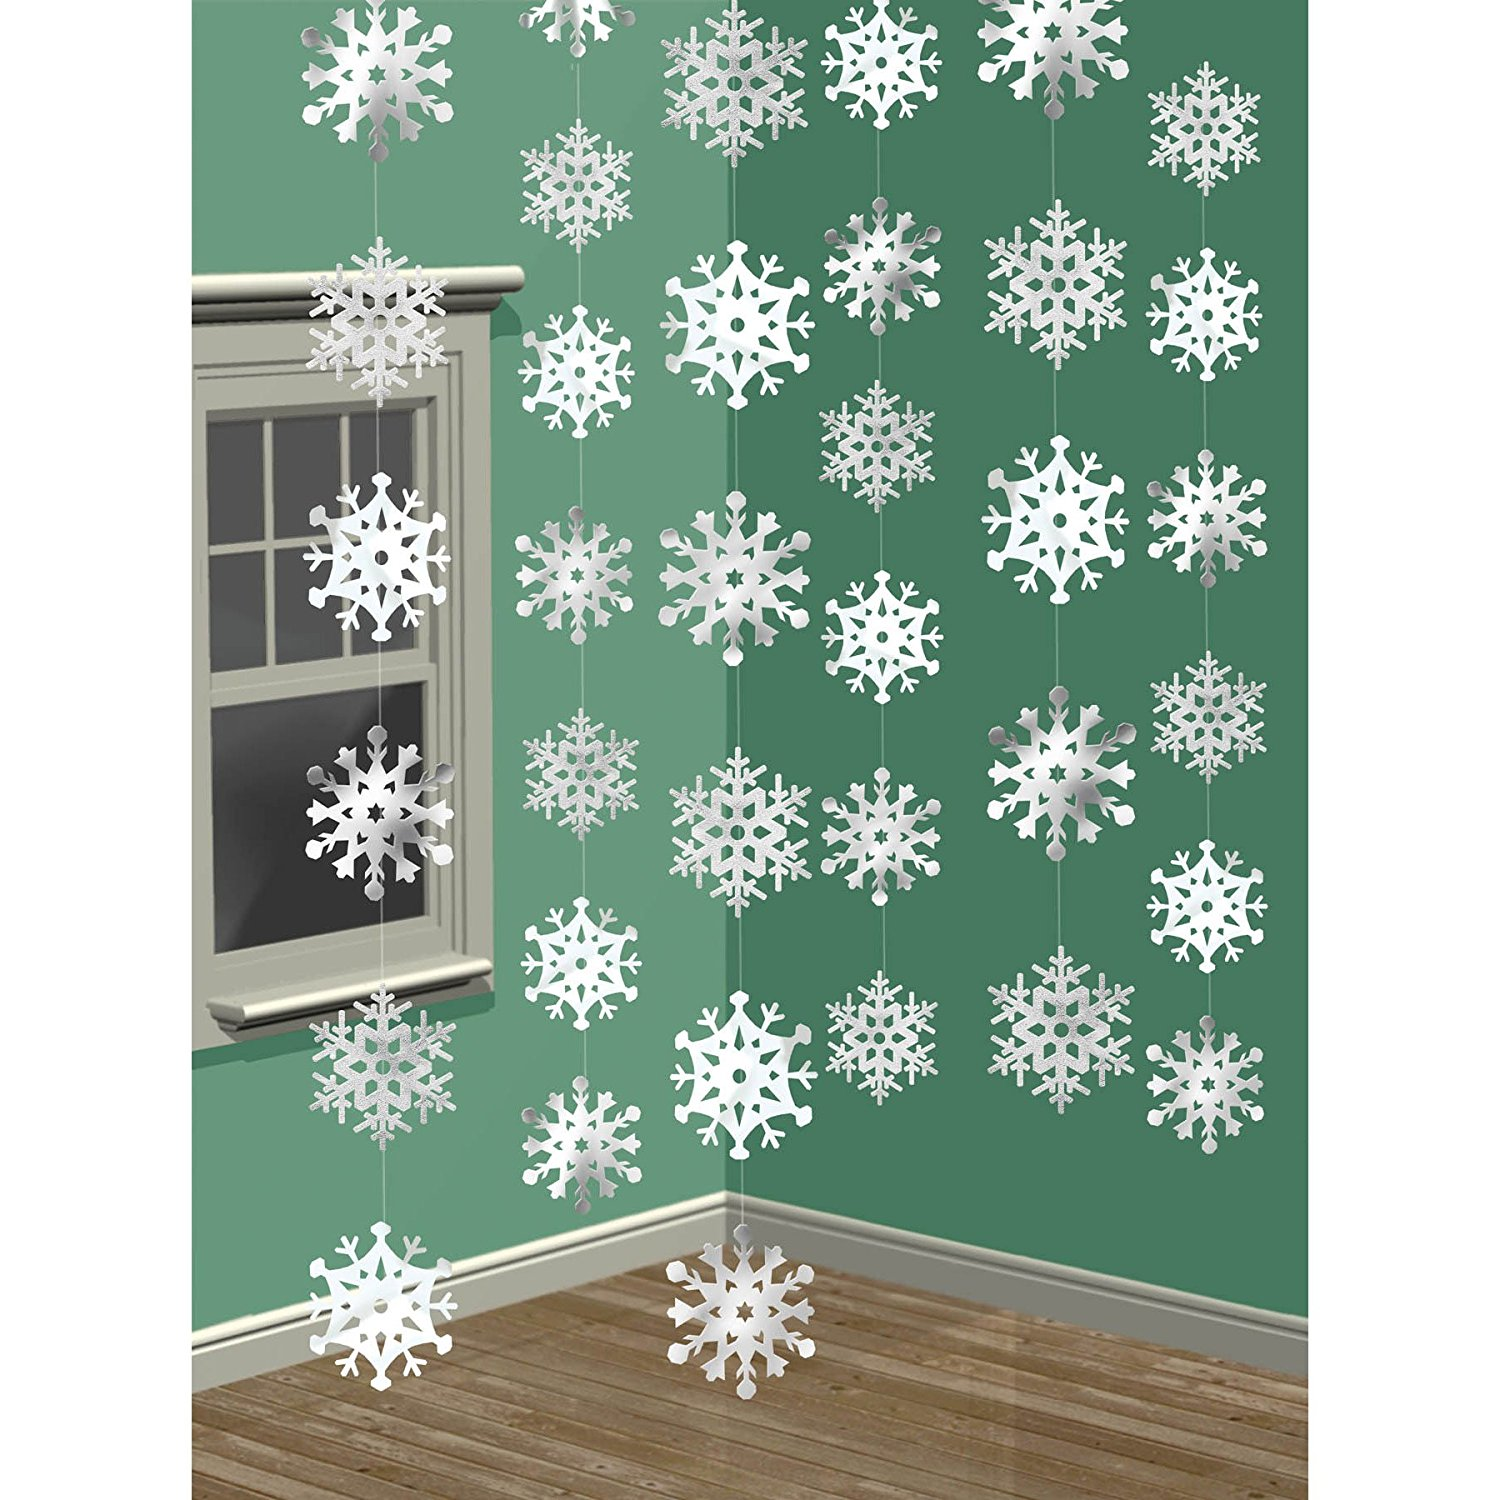 7 Amscan Winter Wonderland Christmas 3 D Snowflake Hanging Party Decoration